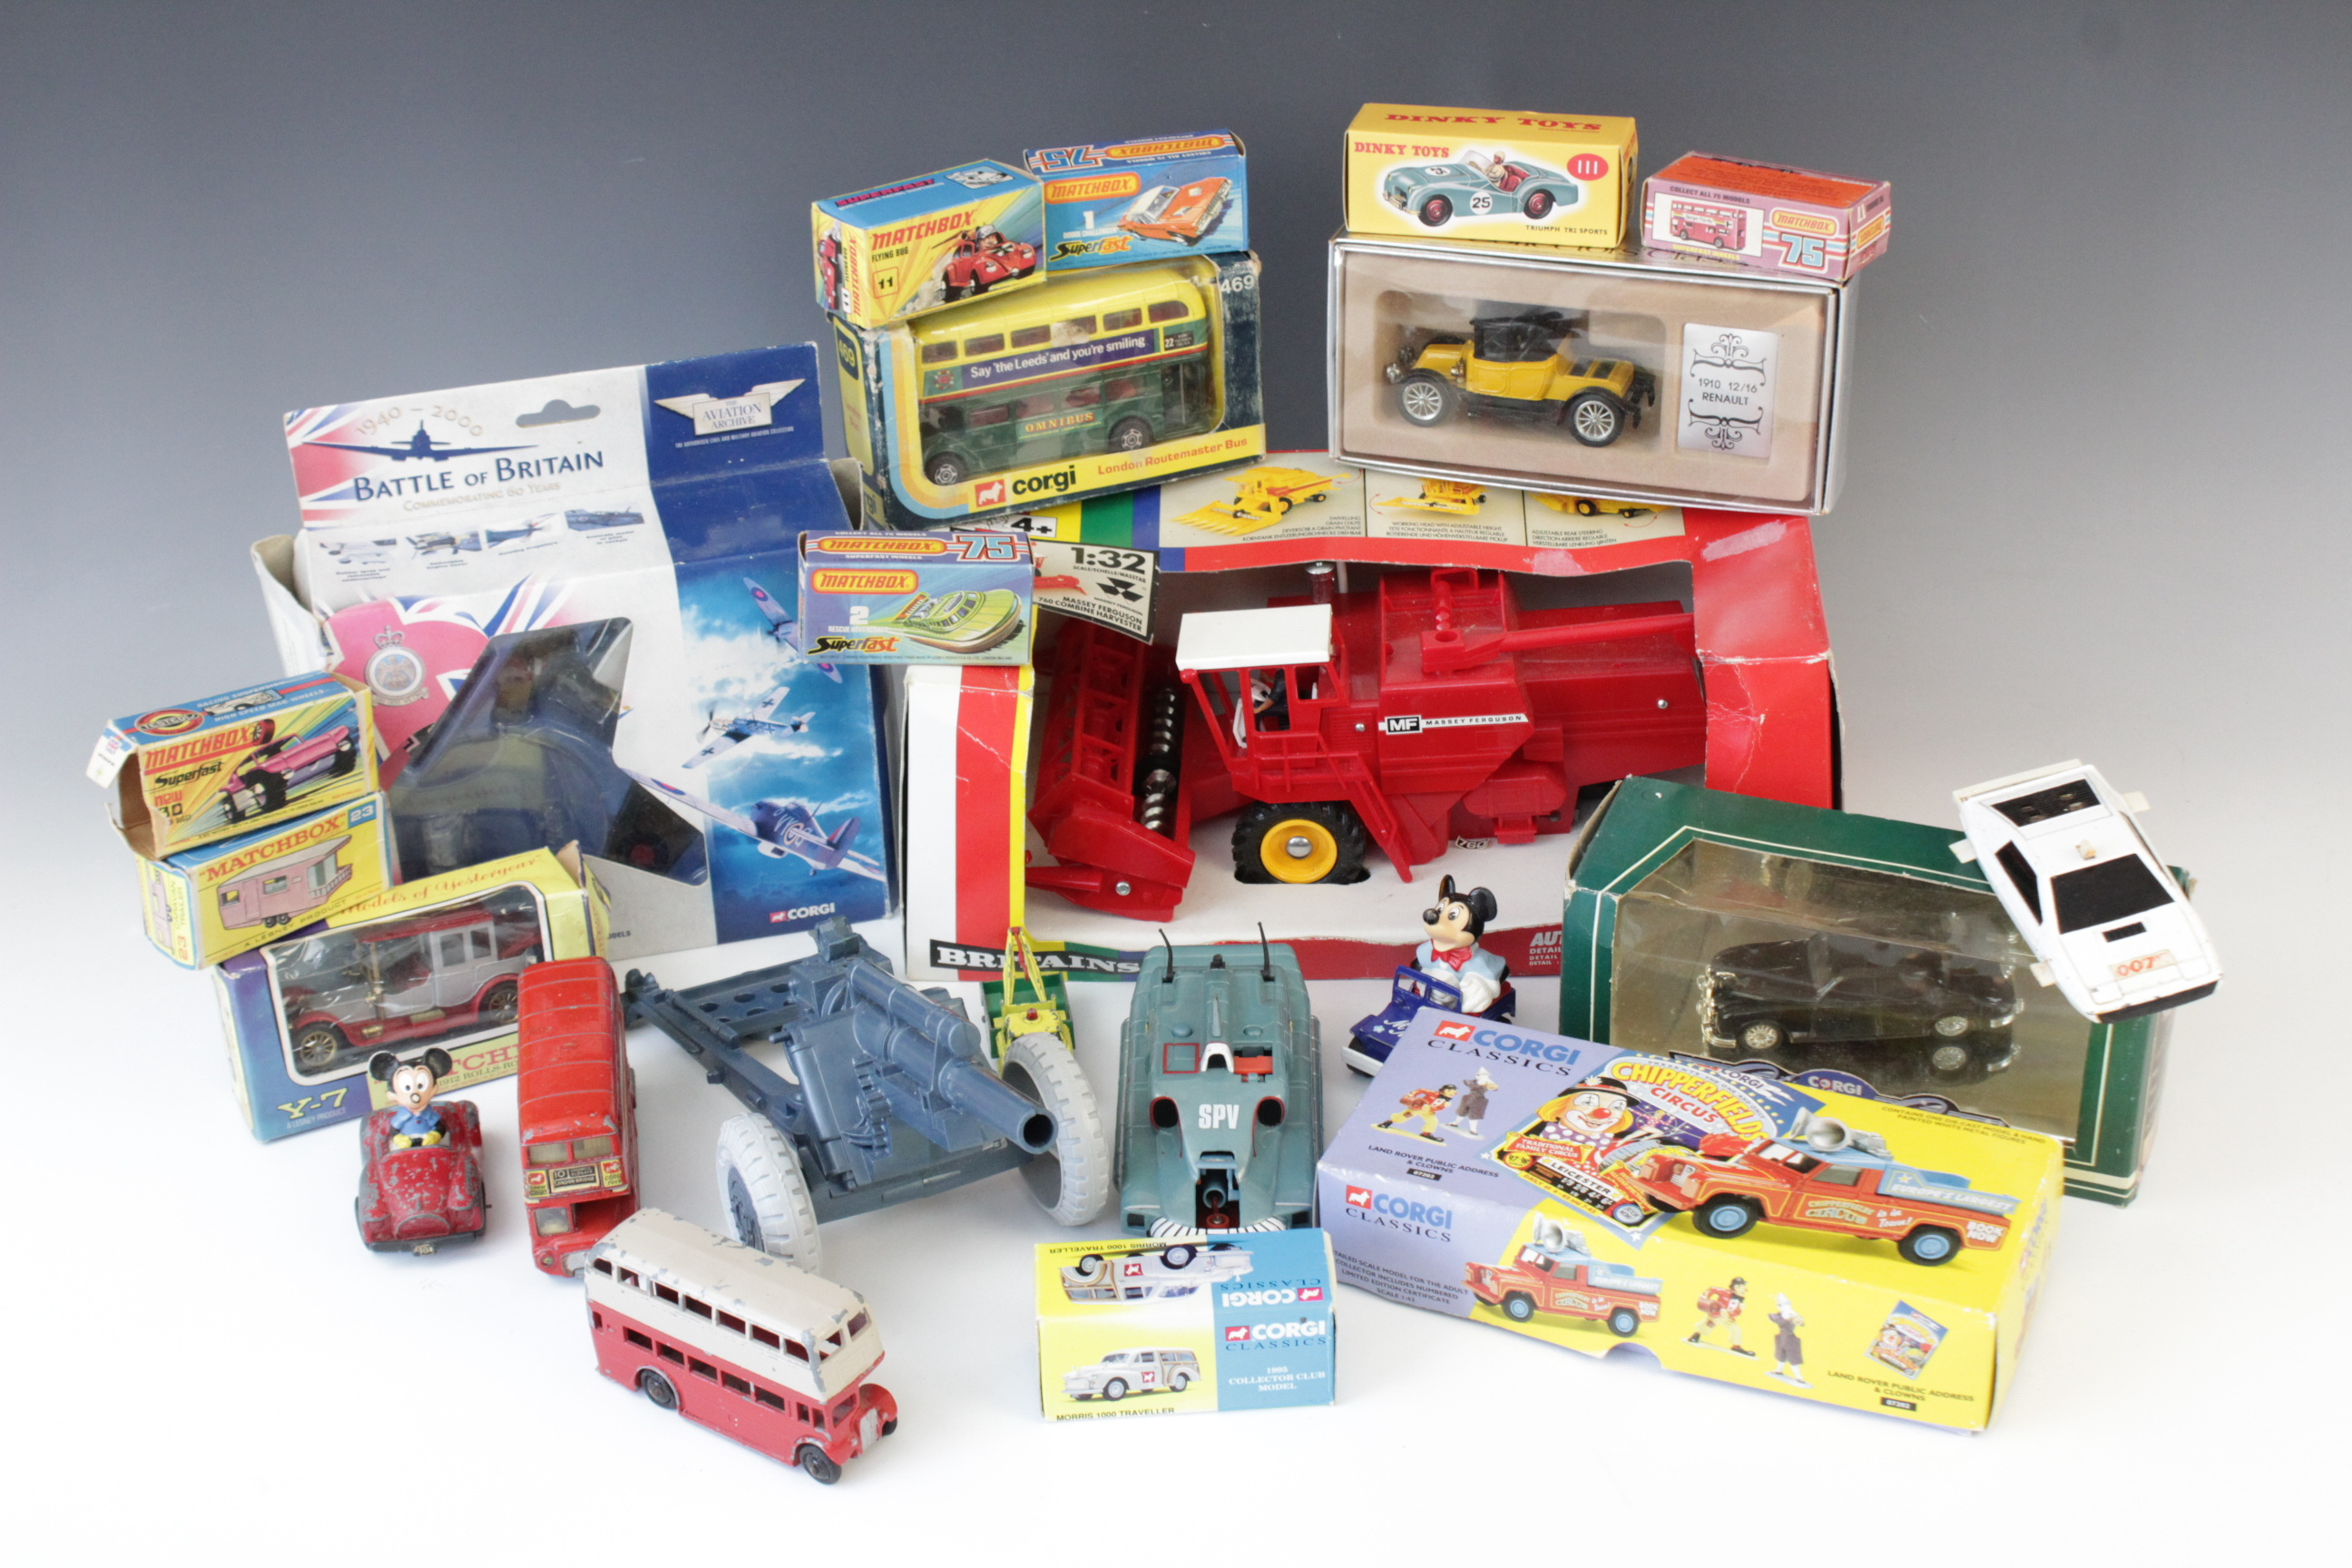 A collection of boxed and un-boxed diecast model vehicles by makers including Corgi, Matchbox